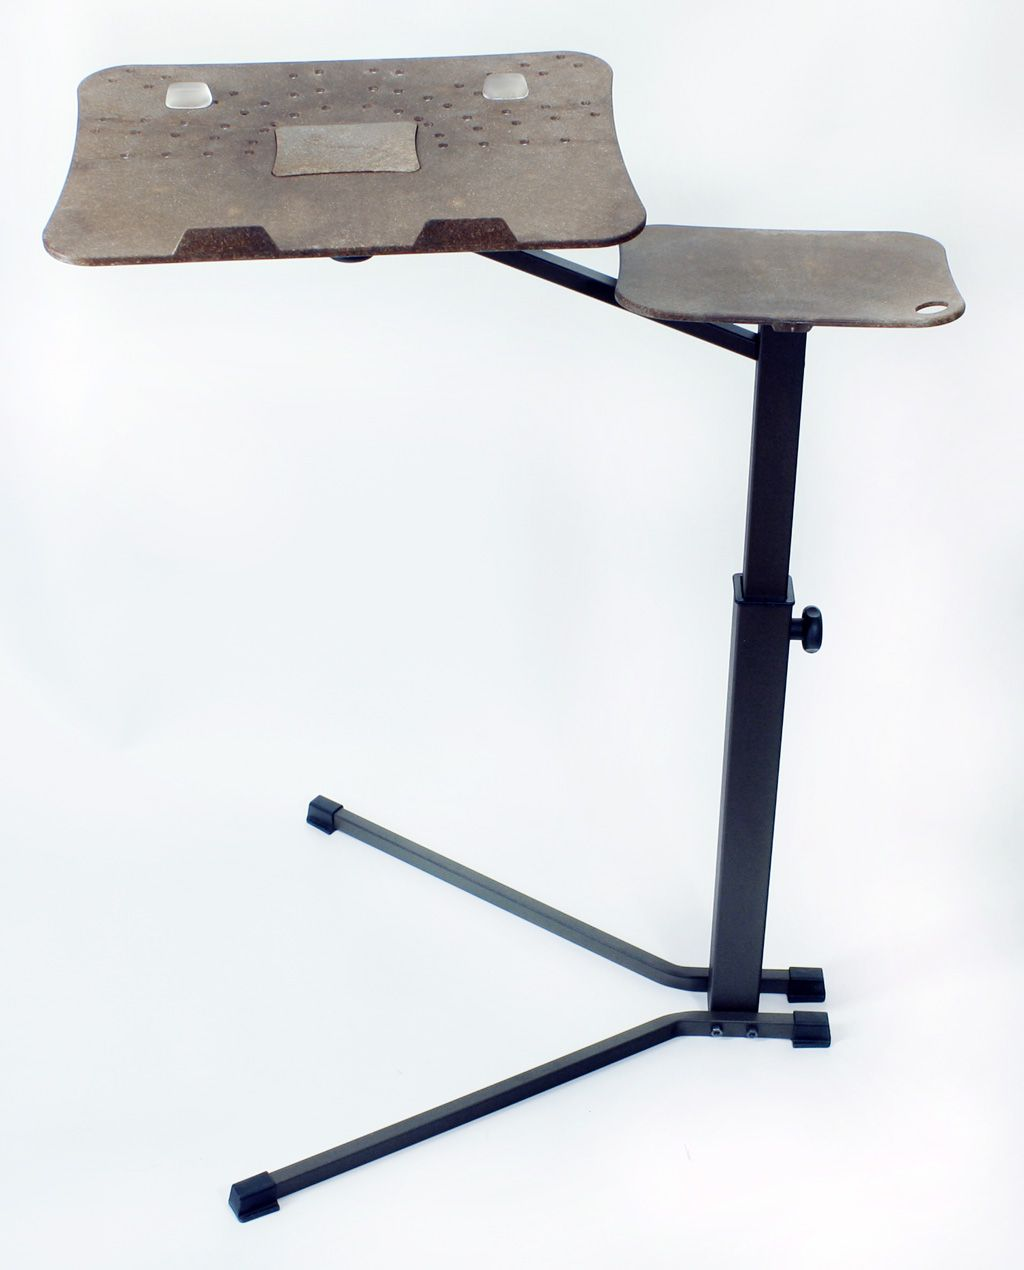 earth friendly furniture. The Lounge-tek Lounge-book Ecodesign Is An Earth Friendly Laptop Stand That Can Furniture F